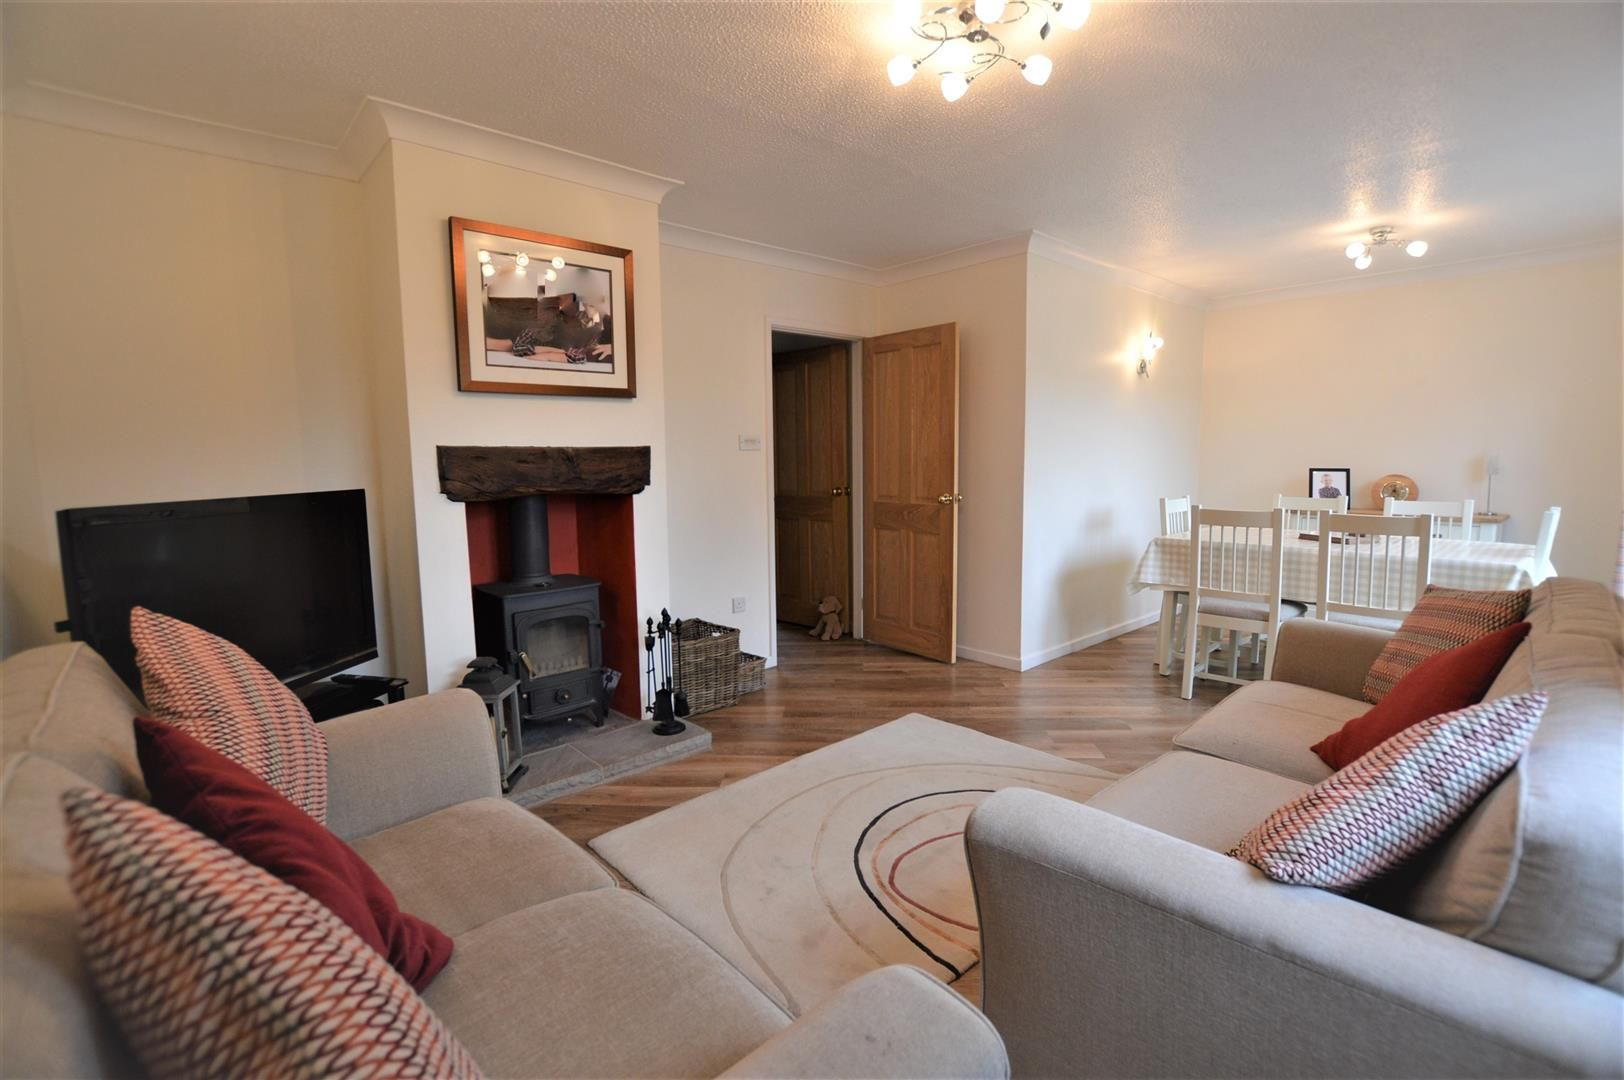 4 bed semi-detached for sale in Luston  - Property Image 3